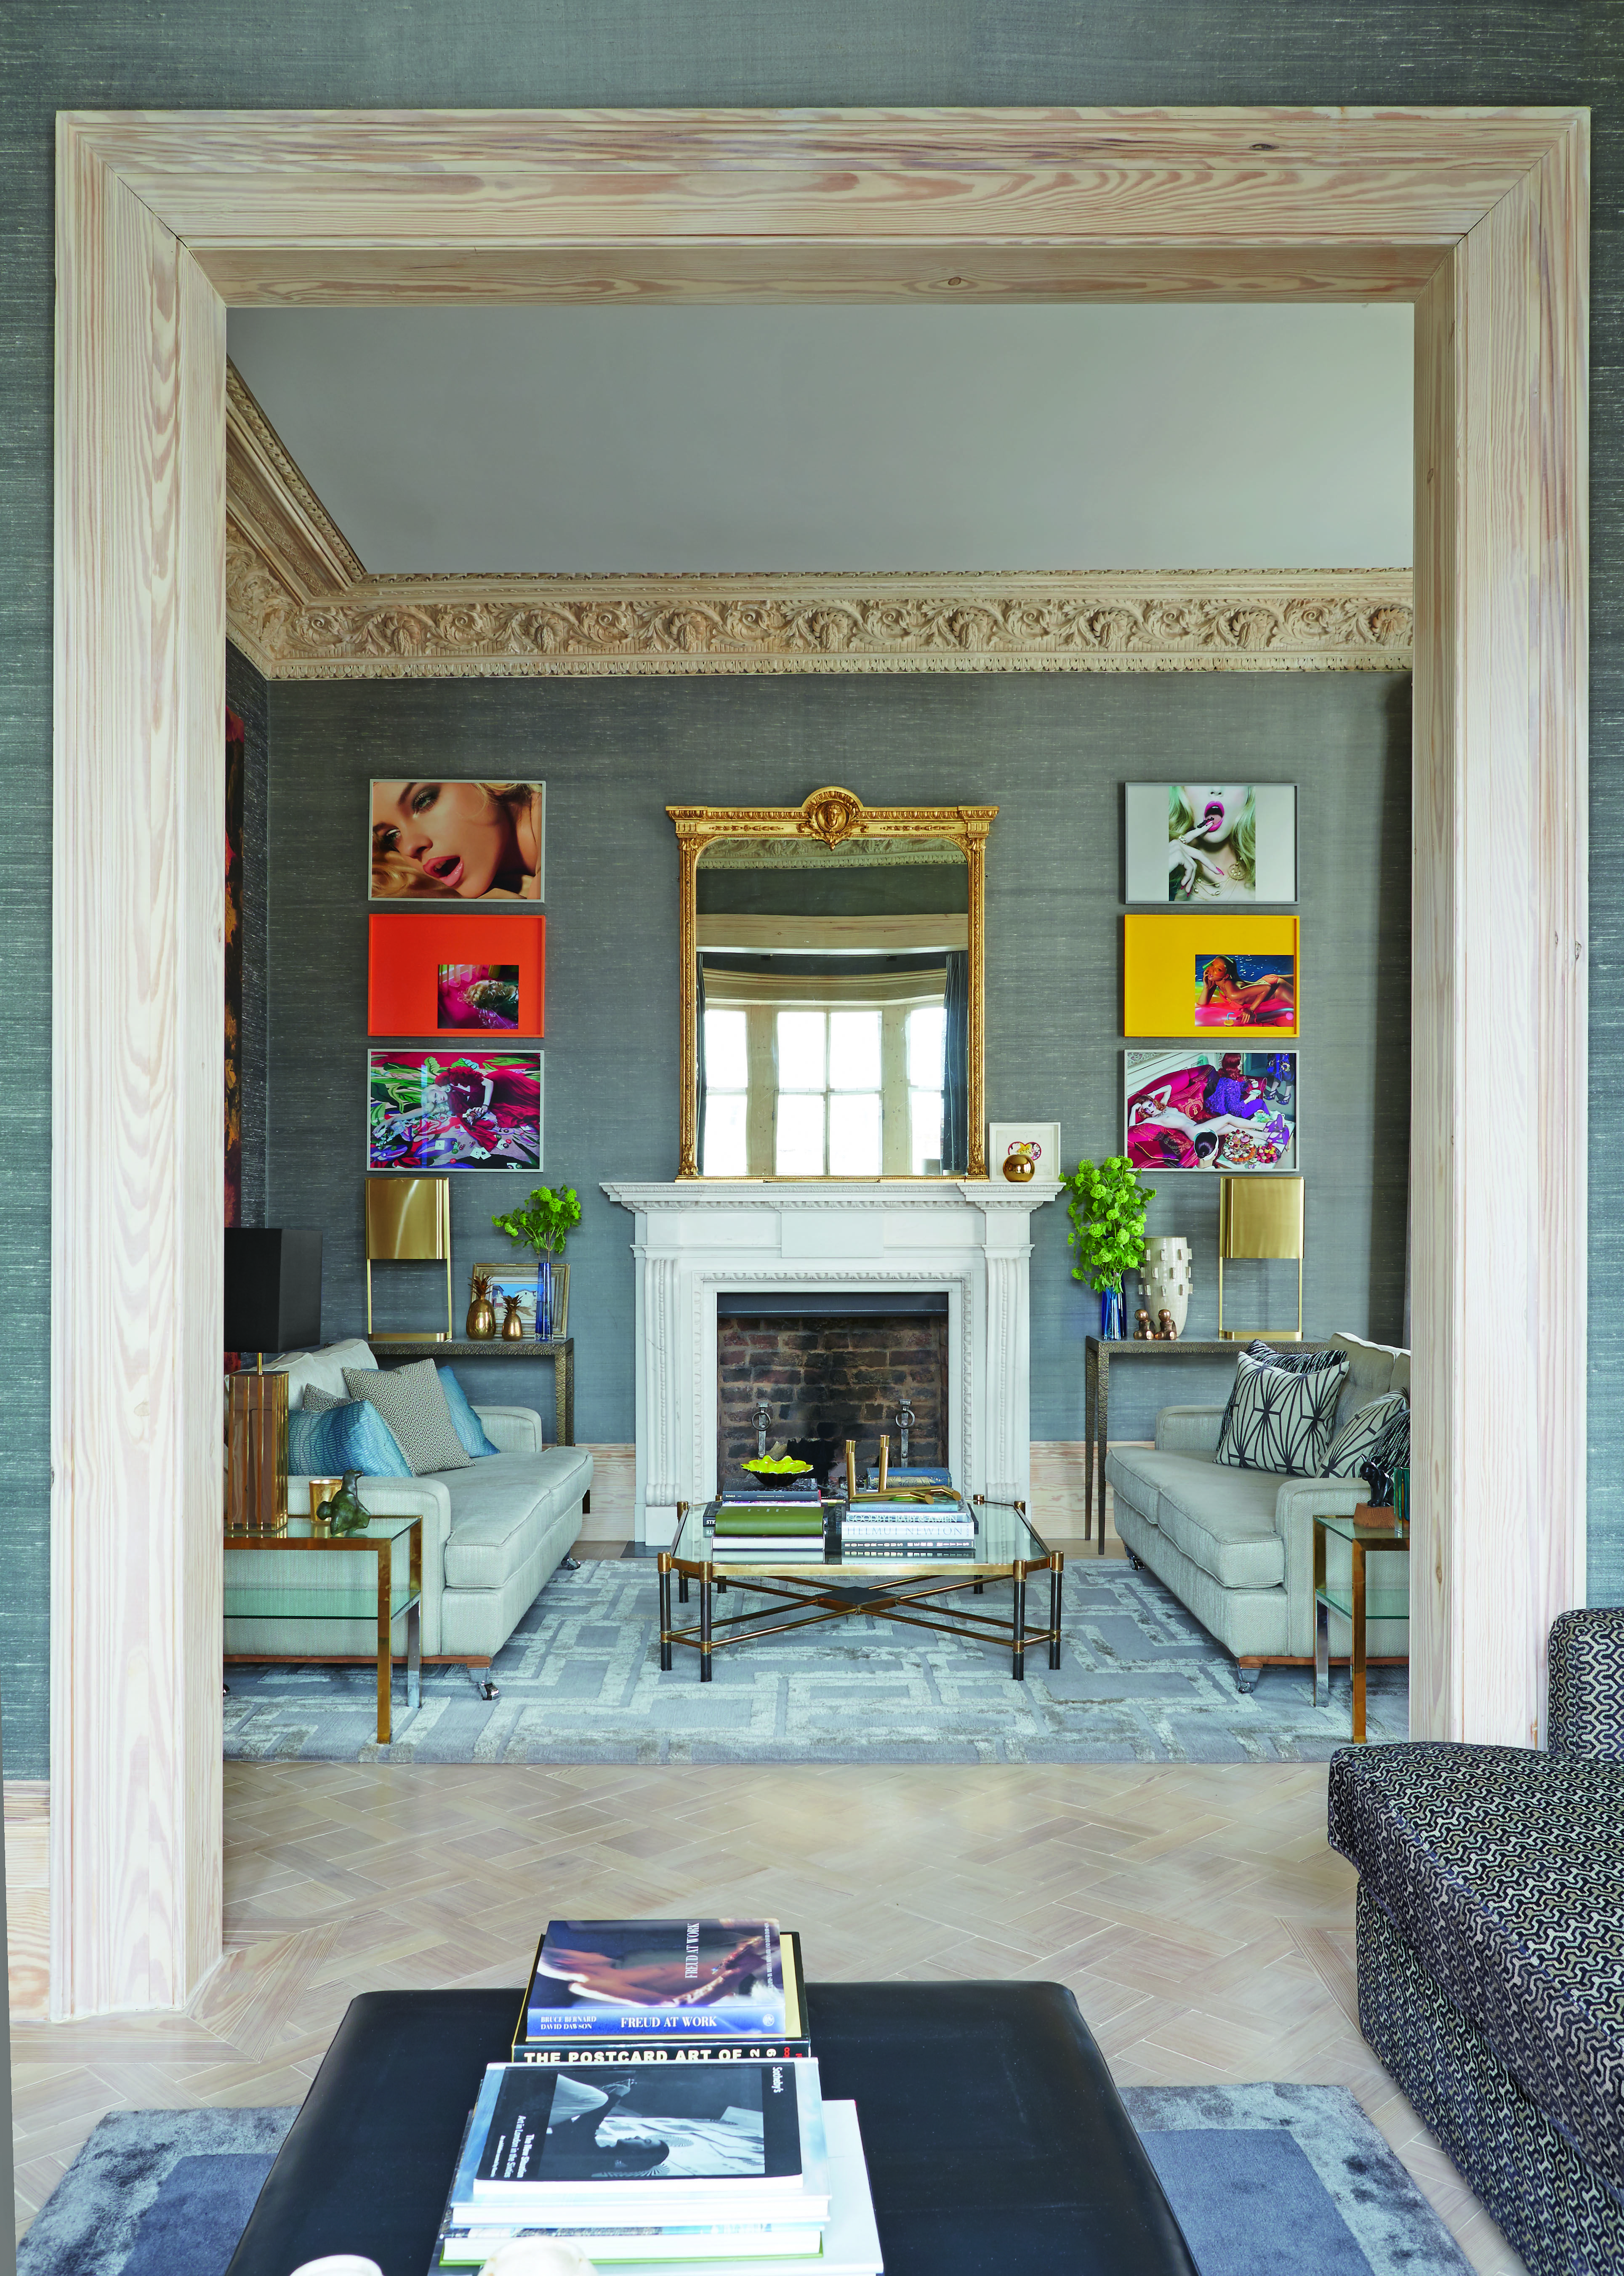 Draw inspiration from stunning interiors like this